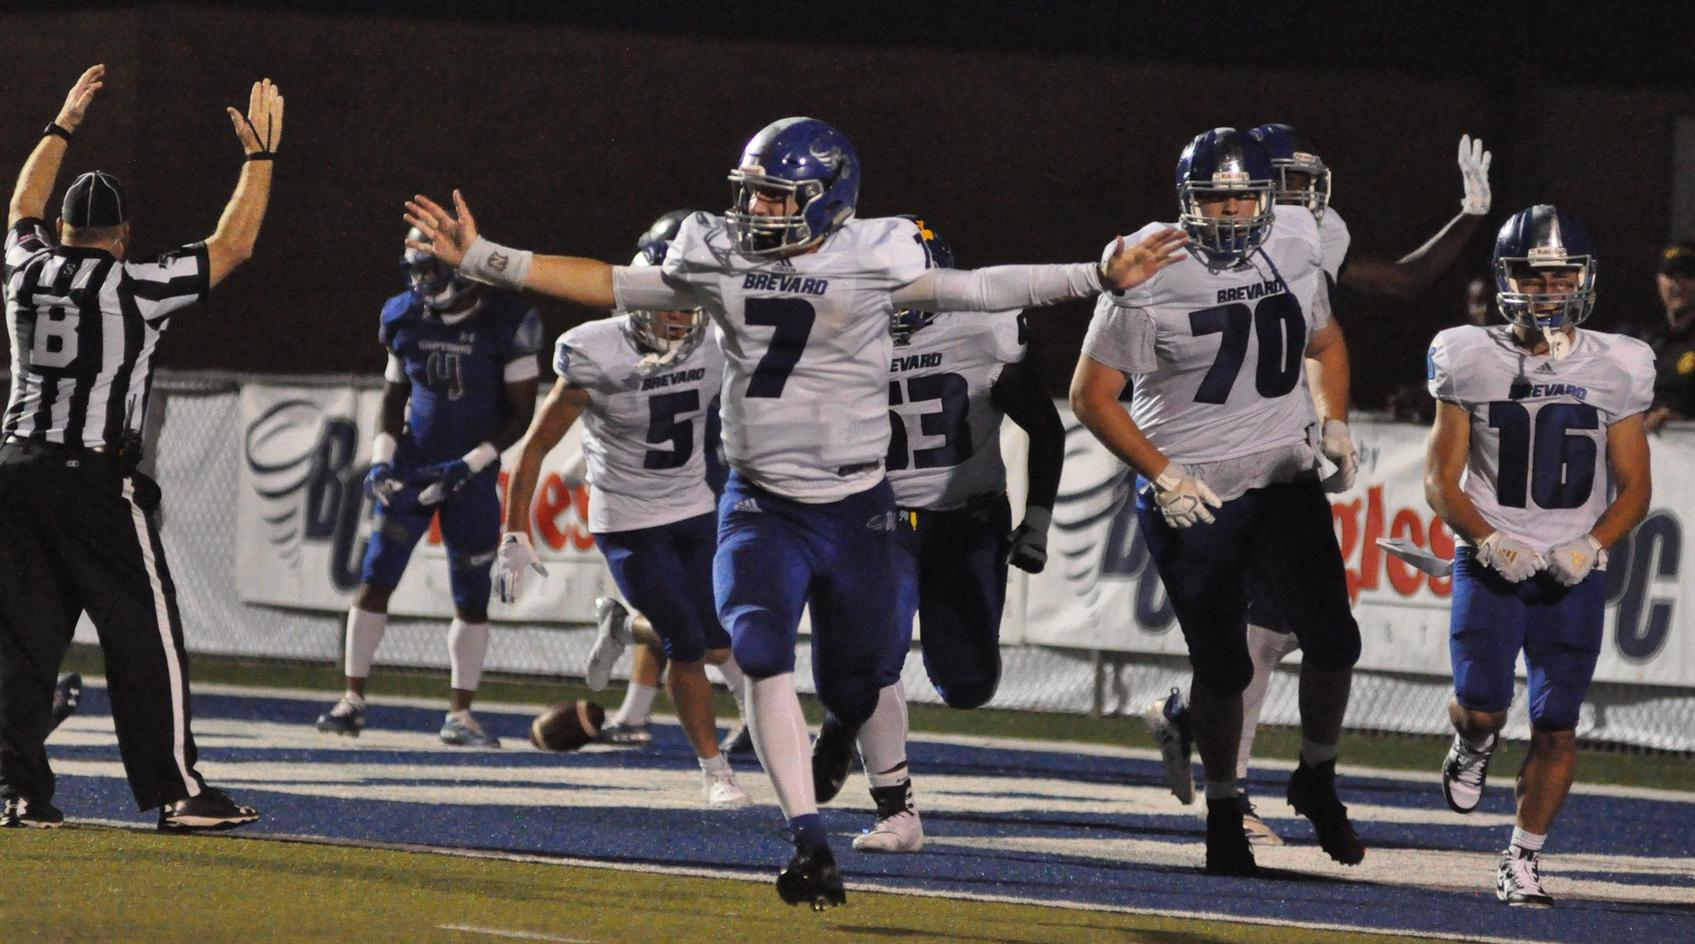 Sophomore quarterback Dalton Cole celebrates a late Tornado touchdown in a 27-6 victory over Christopher Newport on Saturday night at Brevard Memorial Stadium. Cole passed for 181 yards on 10-of-18 passing and a touchdown, while rushing for 100 yards and scoring two touchdowns (Courtesy of Tommy Moss).